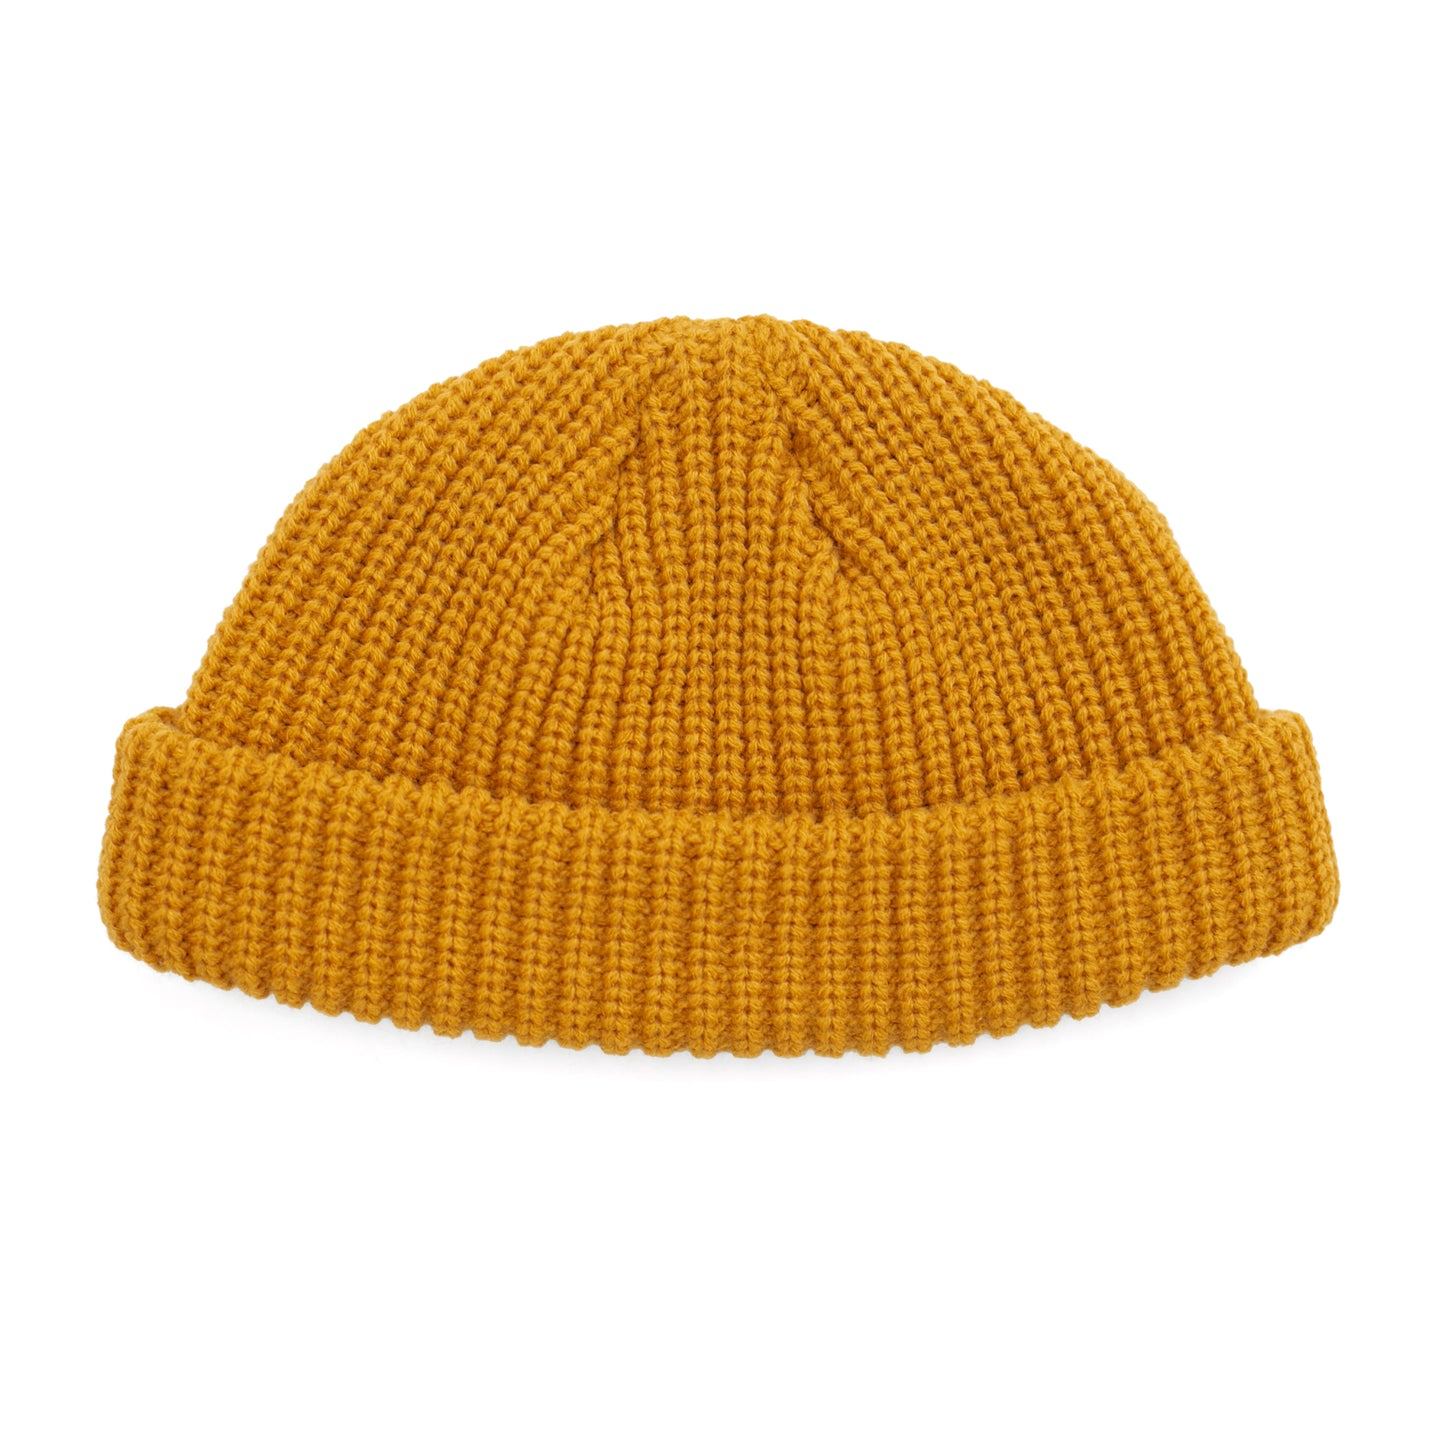 Gold Fisherman Micro Beanie